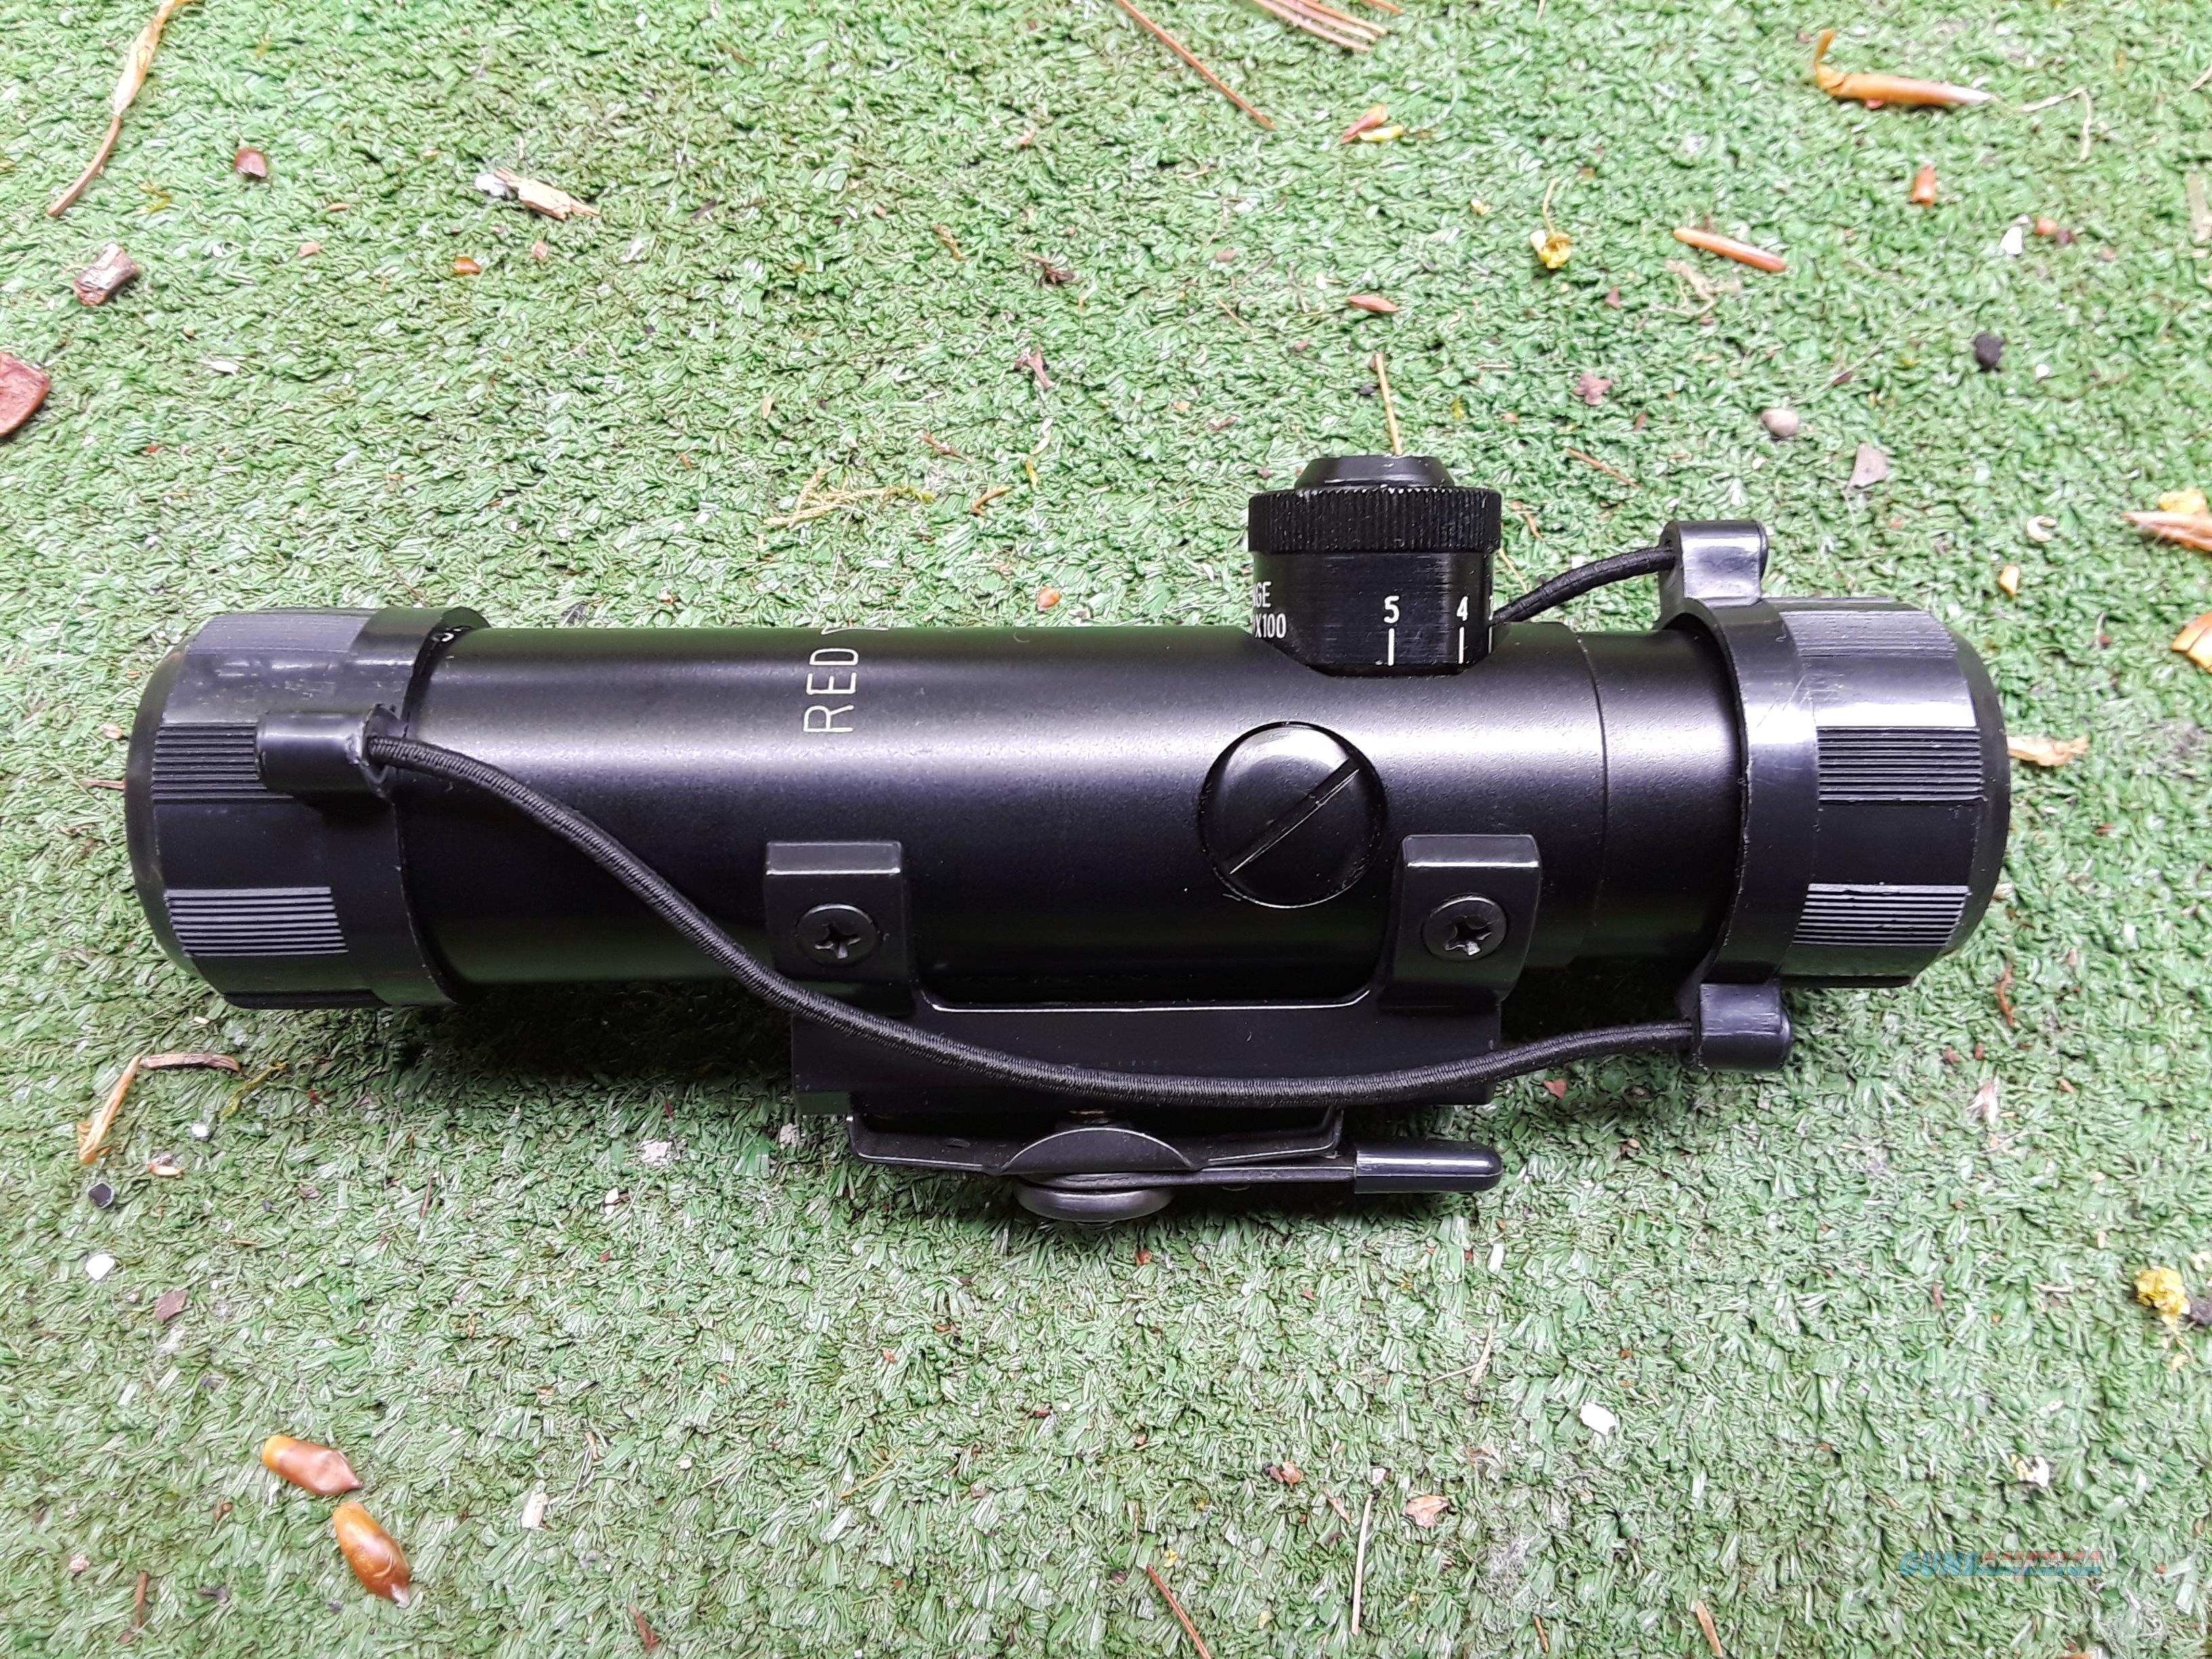 Red Star AR-15 Handle Scope with Lens Covers  Non-Guns > Scopes/Mounts/Rings & Optics > Rifle Scopes > Variable Focal Length